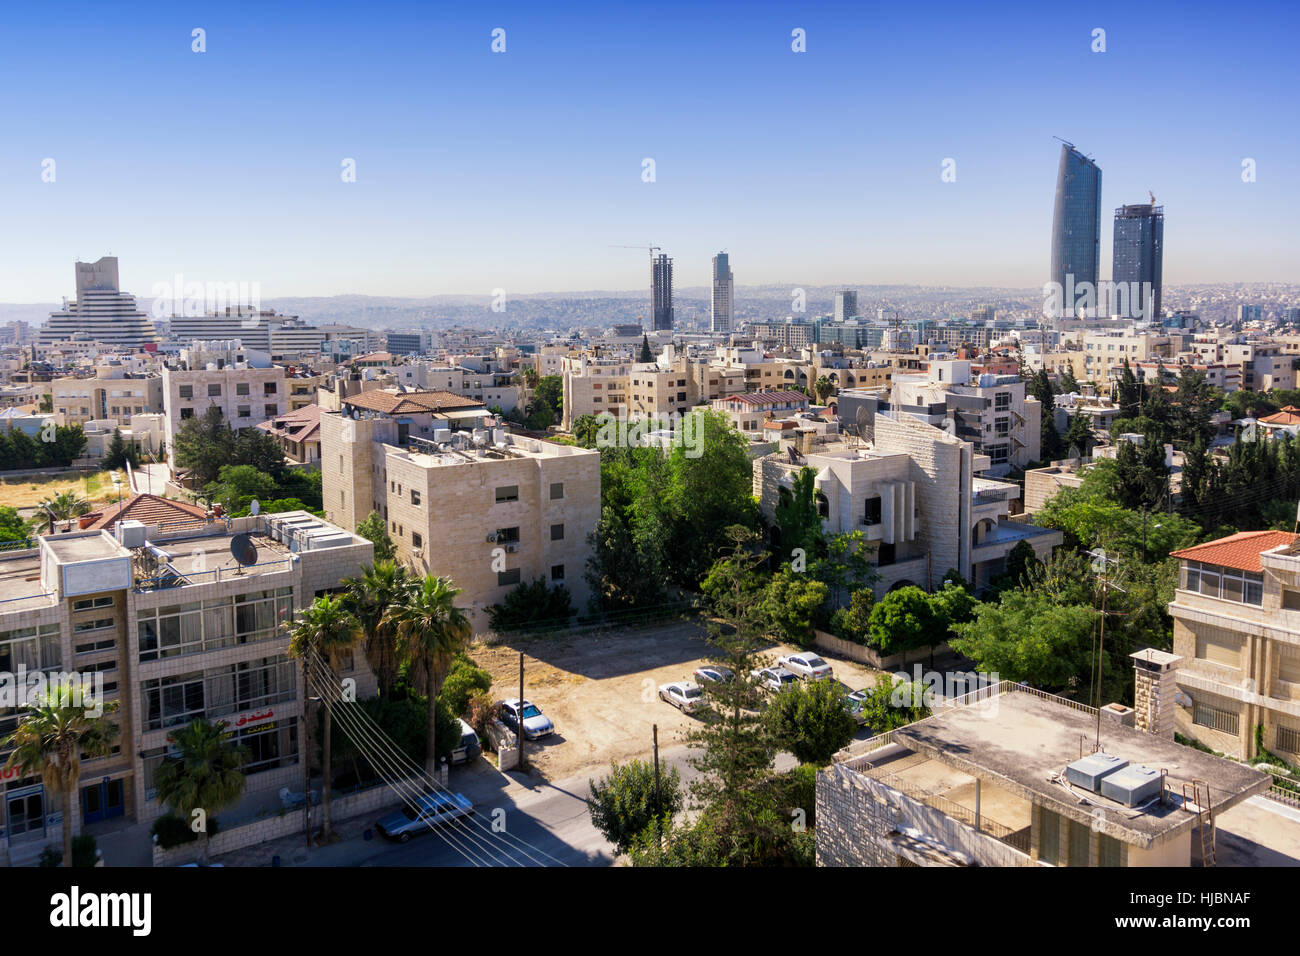 Vue sur la ville d'Amman, en Jordanie Photo Stock